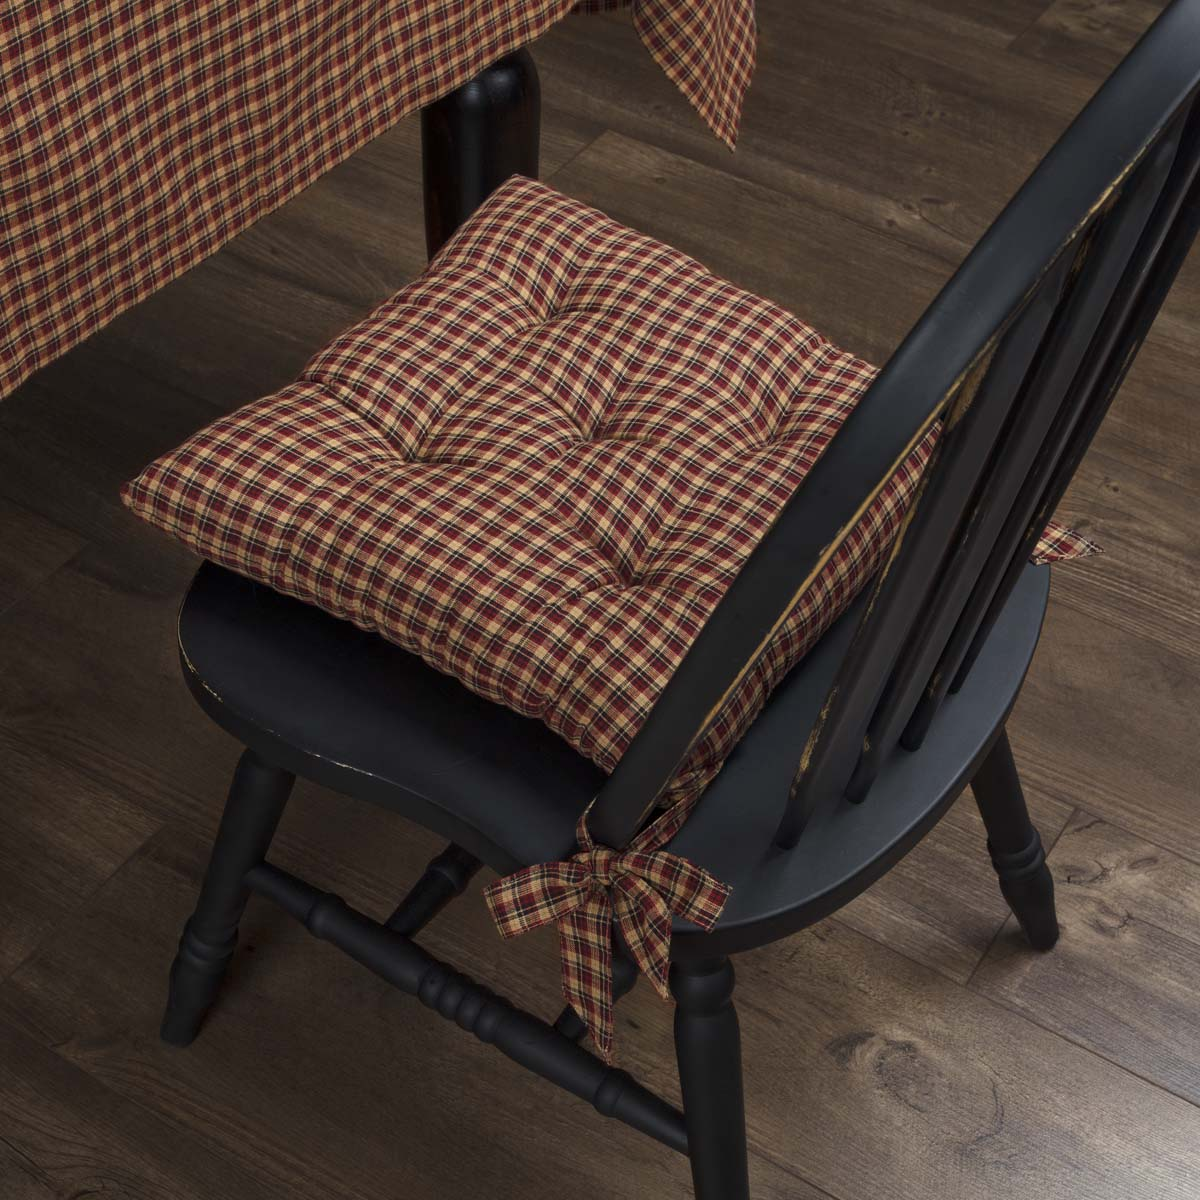 Patriotic-Patch-Plaid-Chair-Pad-image-1